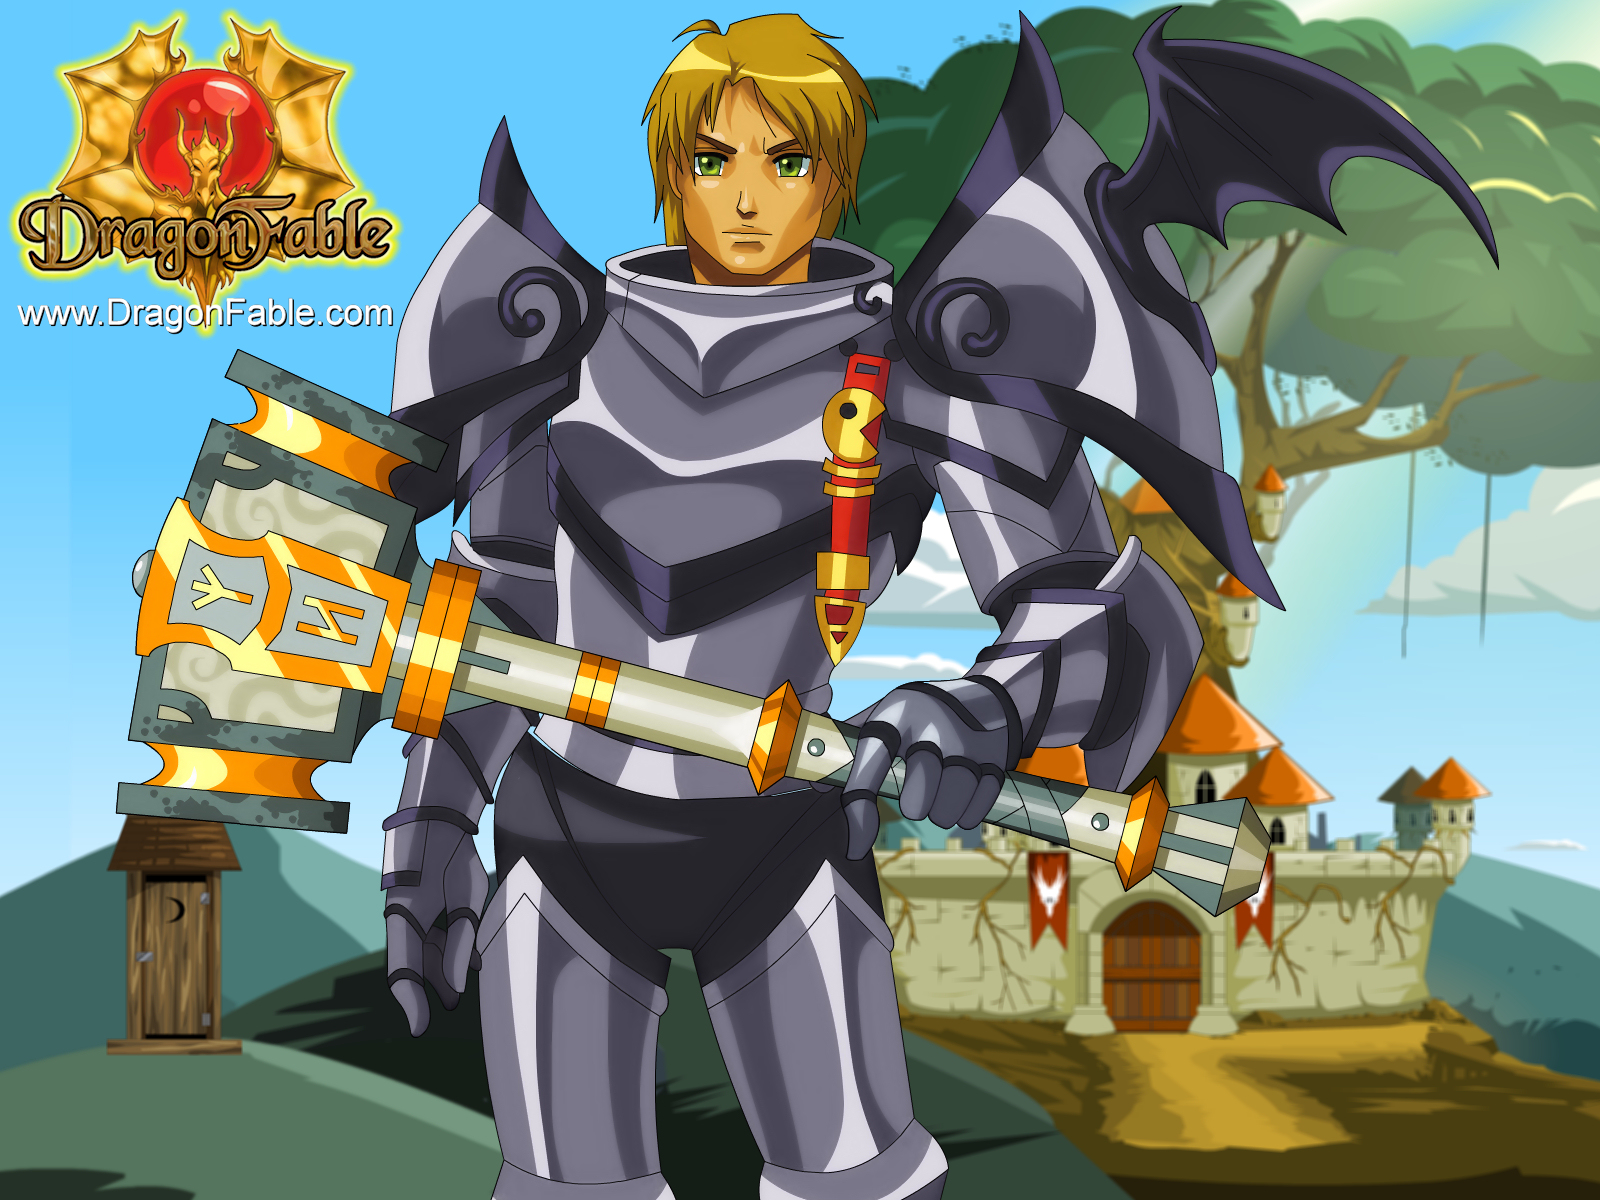 Dragonfable Wallpapers